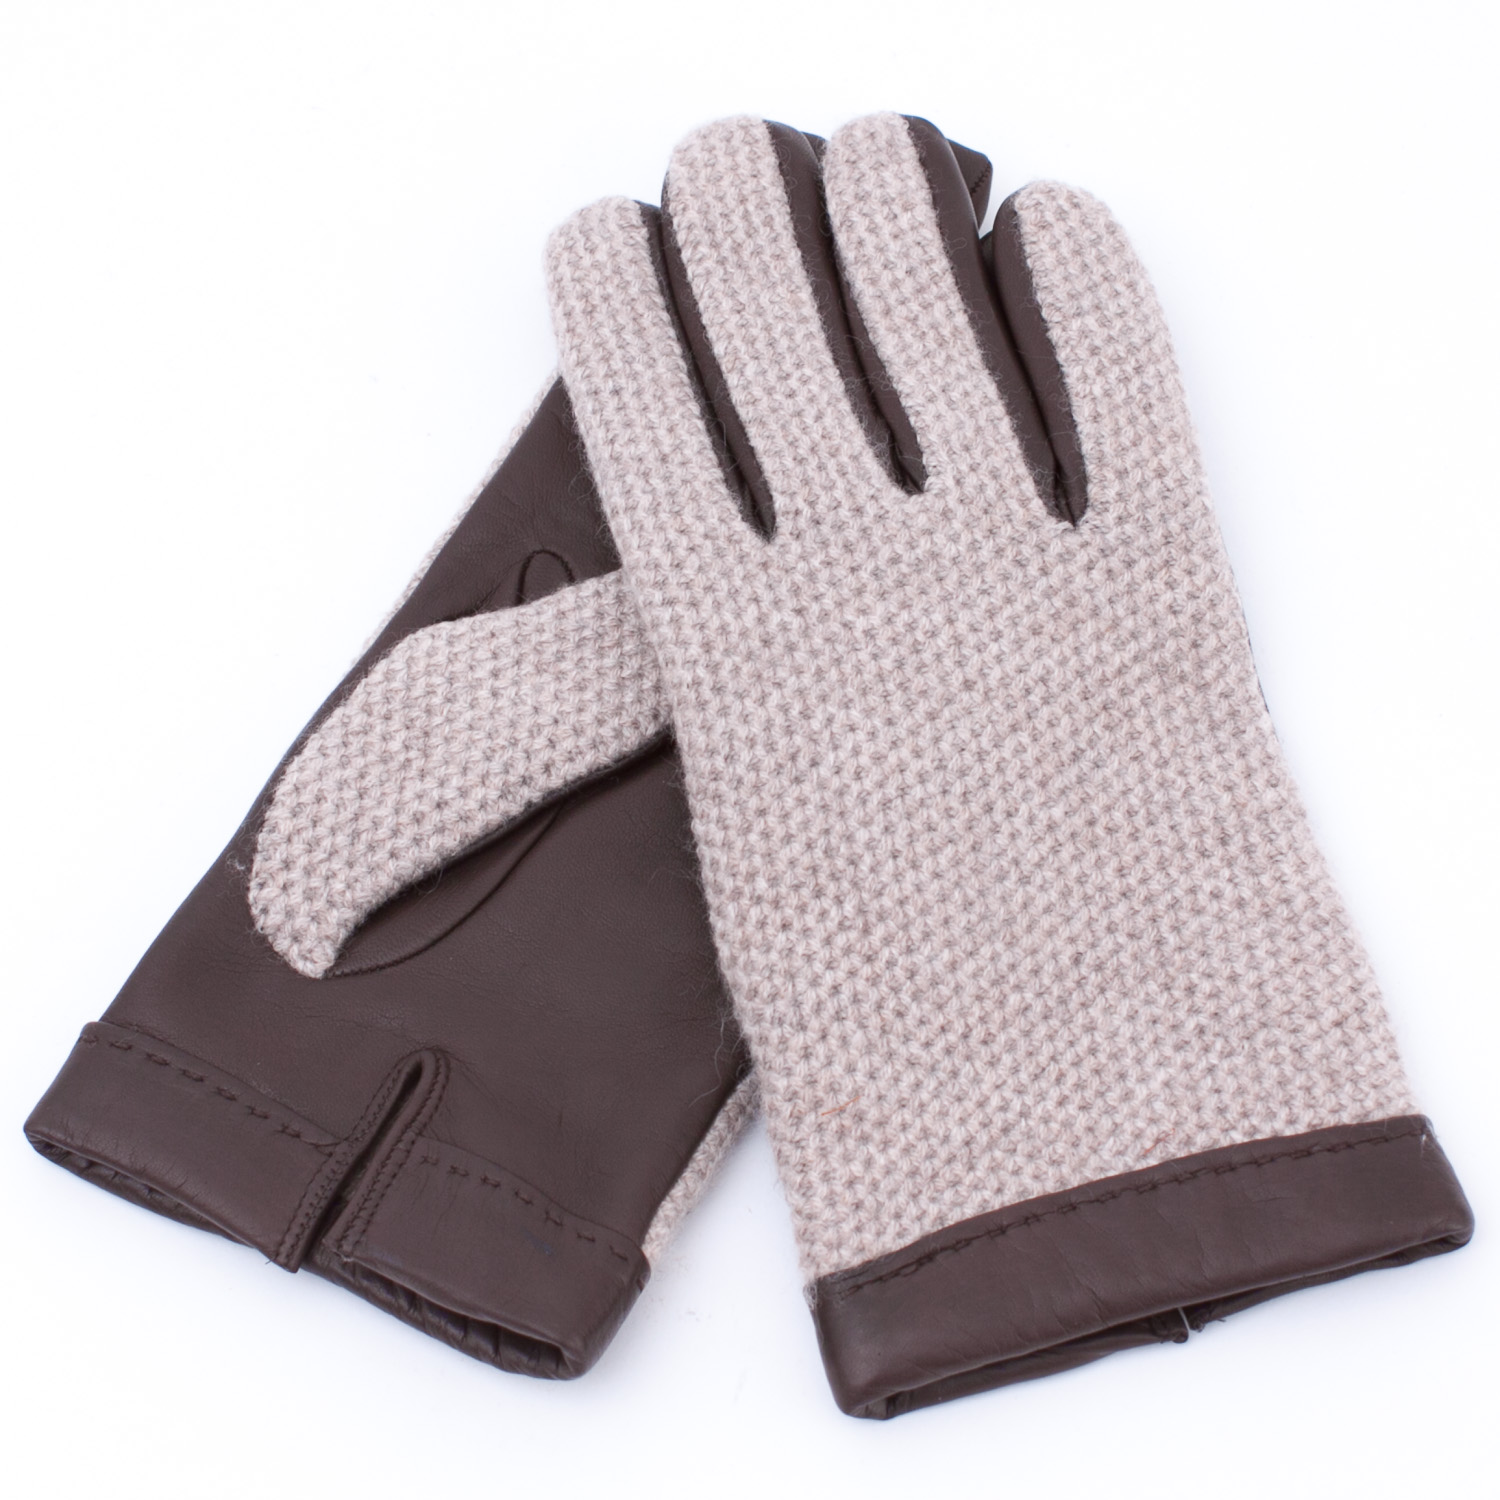 Merola Nappa and Cariaggi Cashmere Gloves